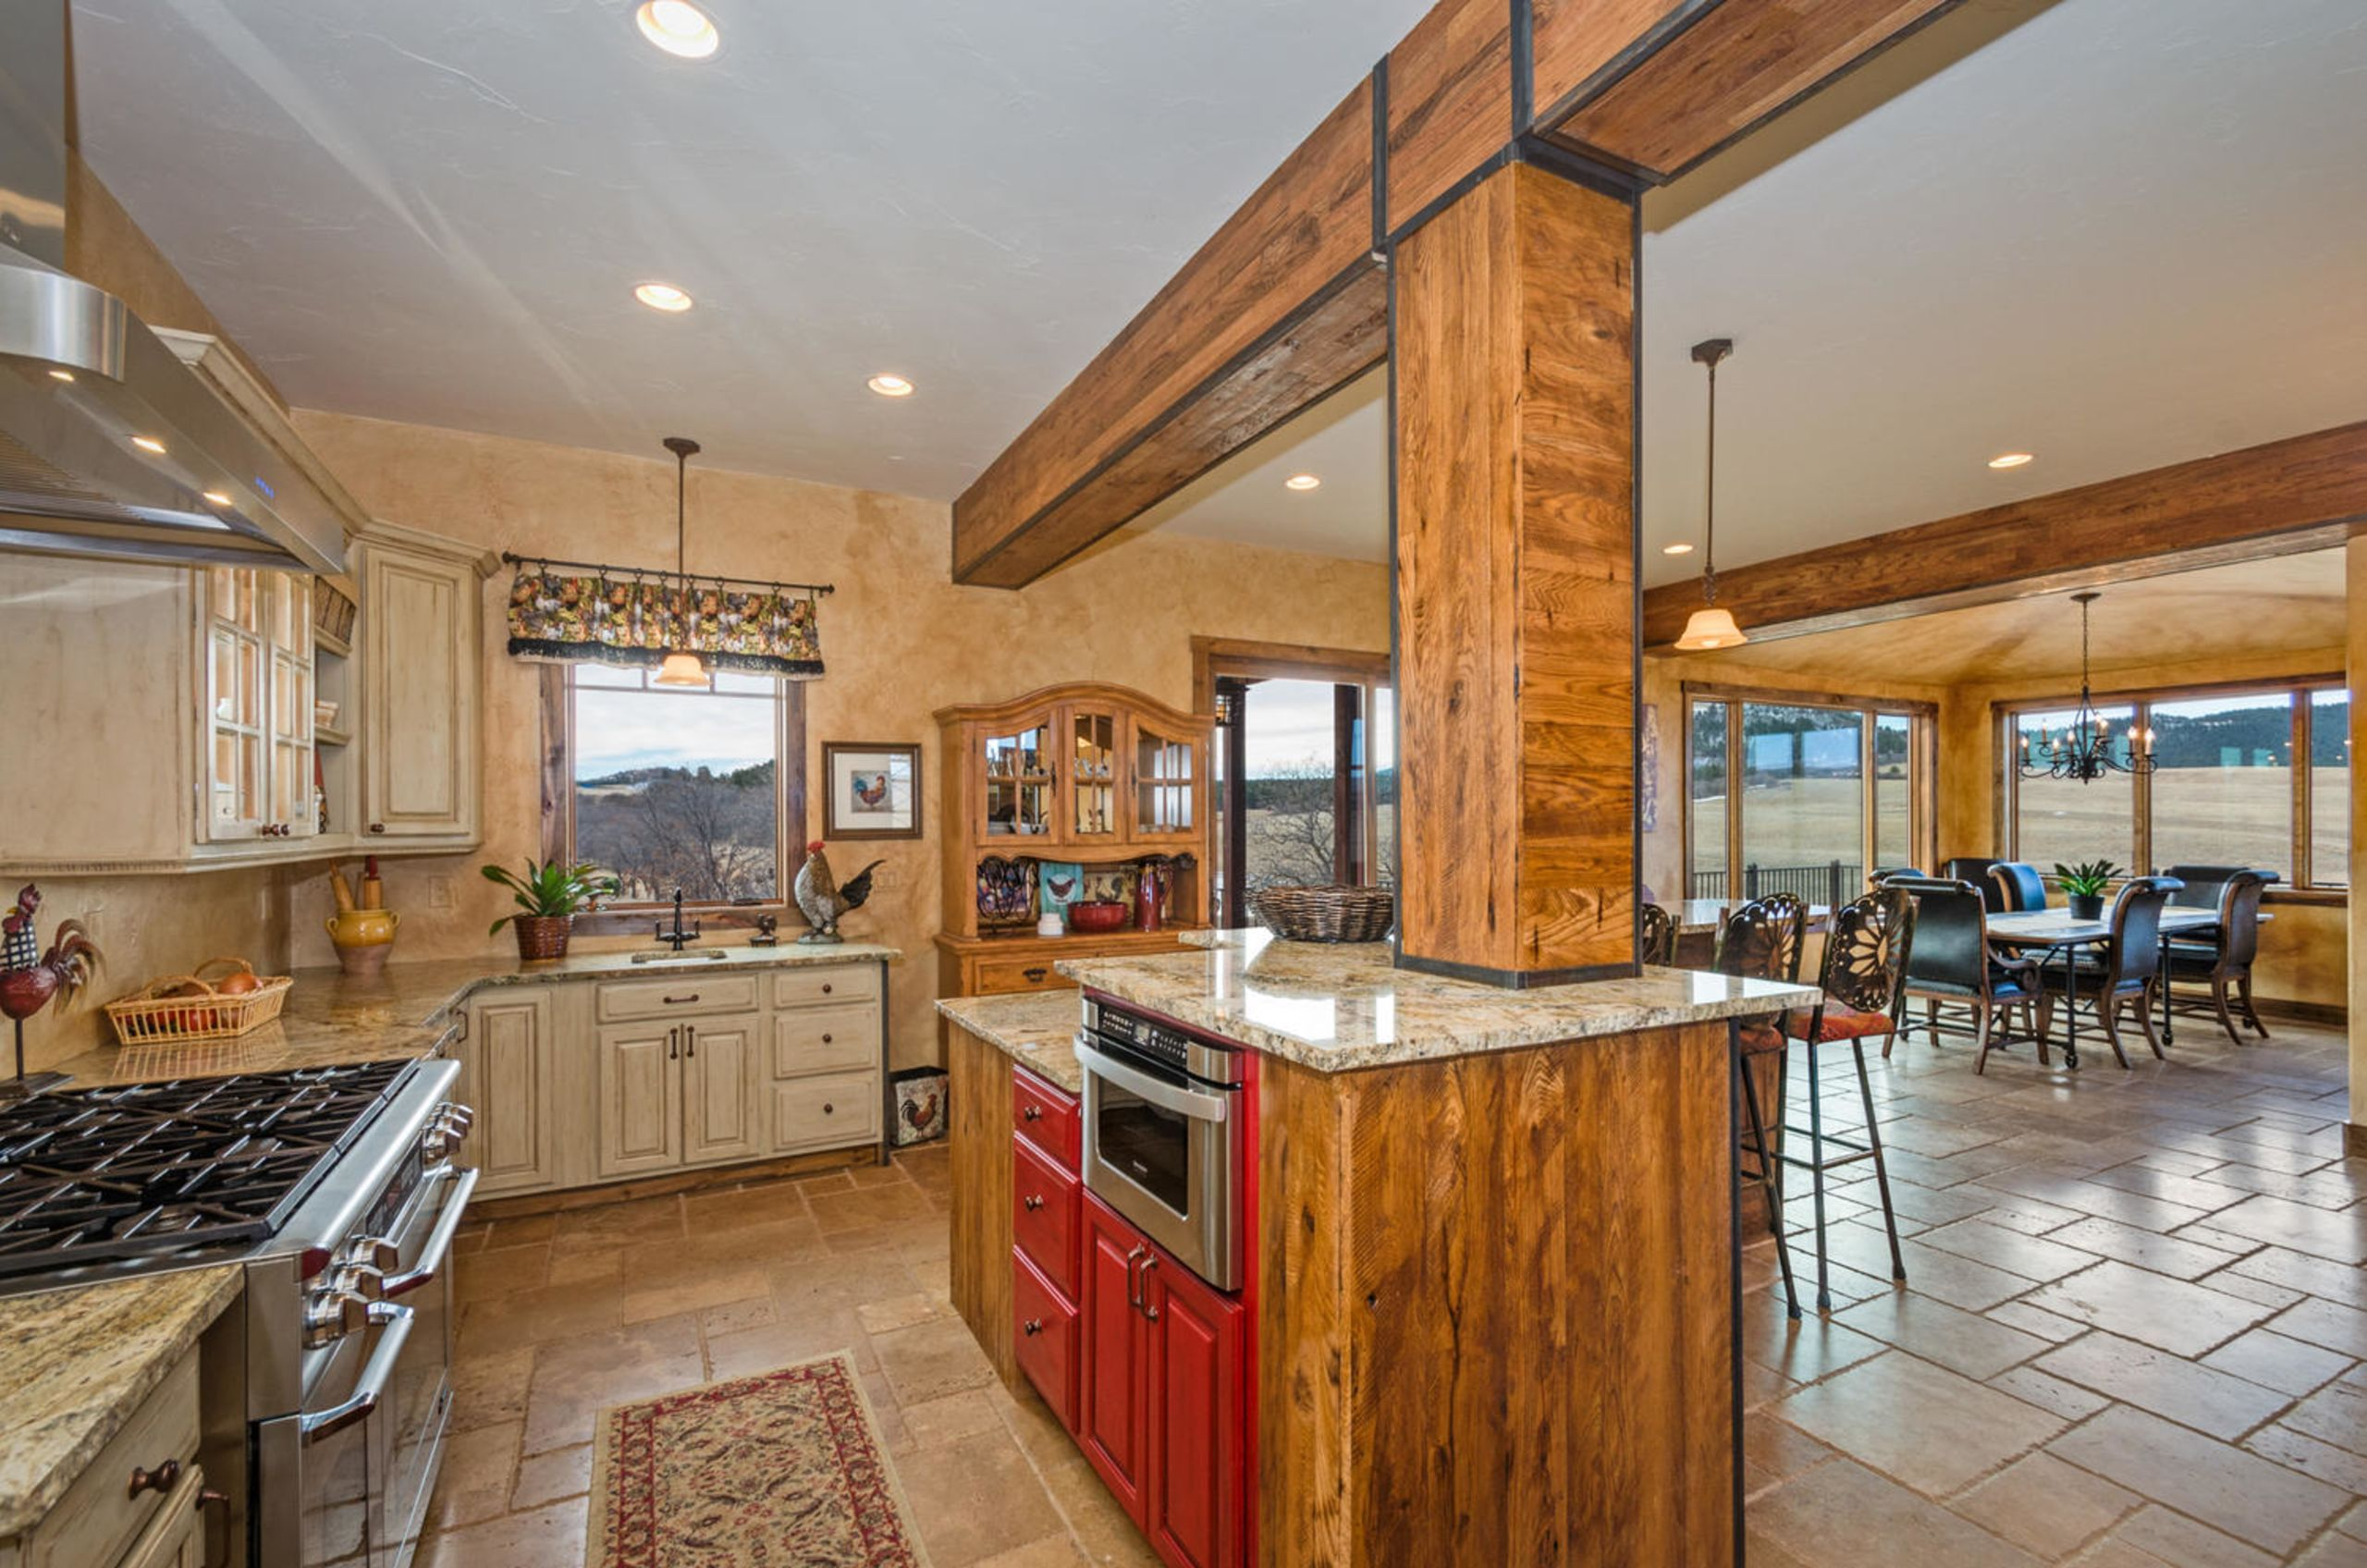 Modern Farm Kitchen